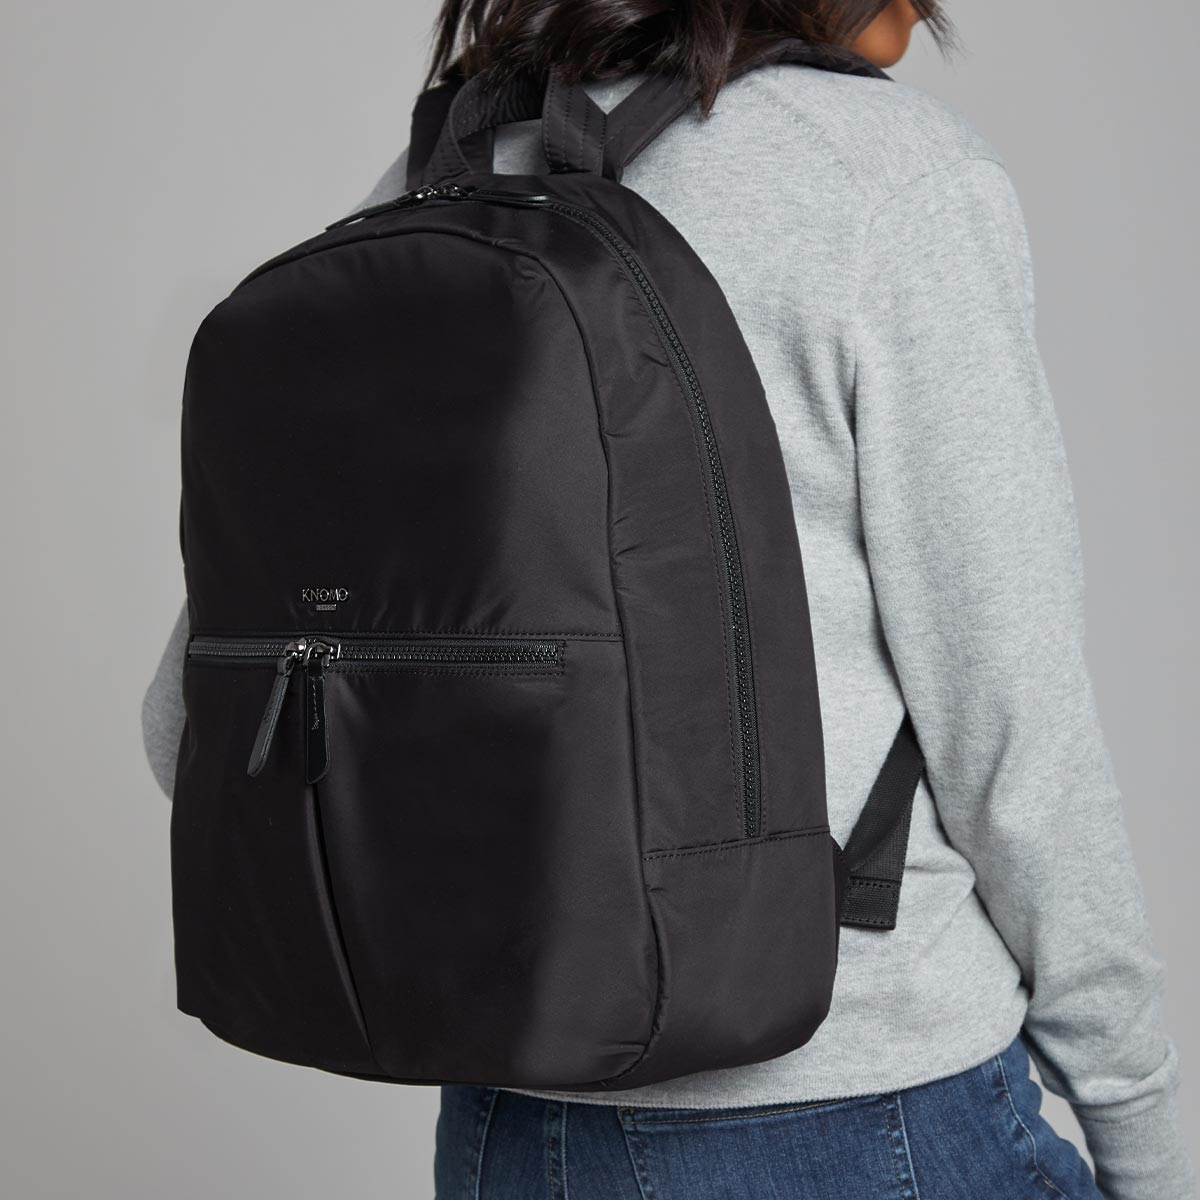 "KNOMO Berlin Laptop Backpack Female Model Wearing 15"" -  Black 